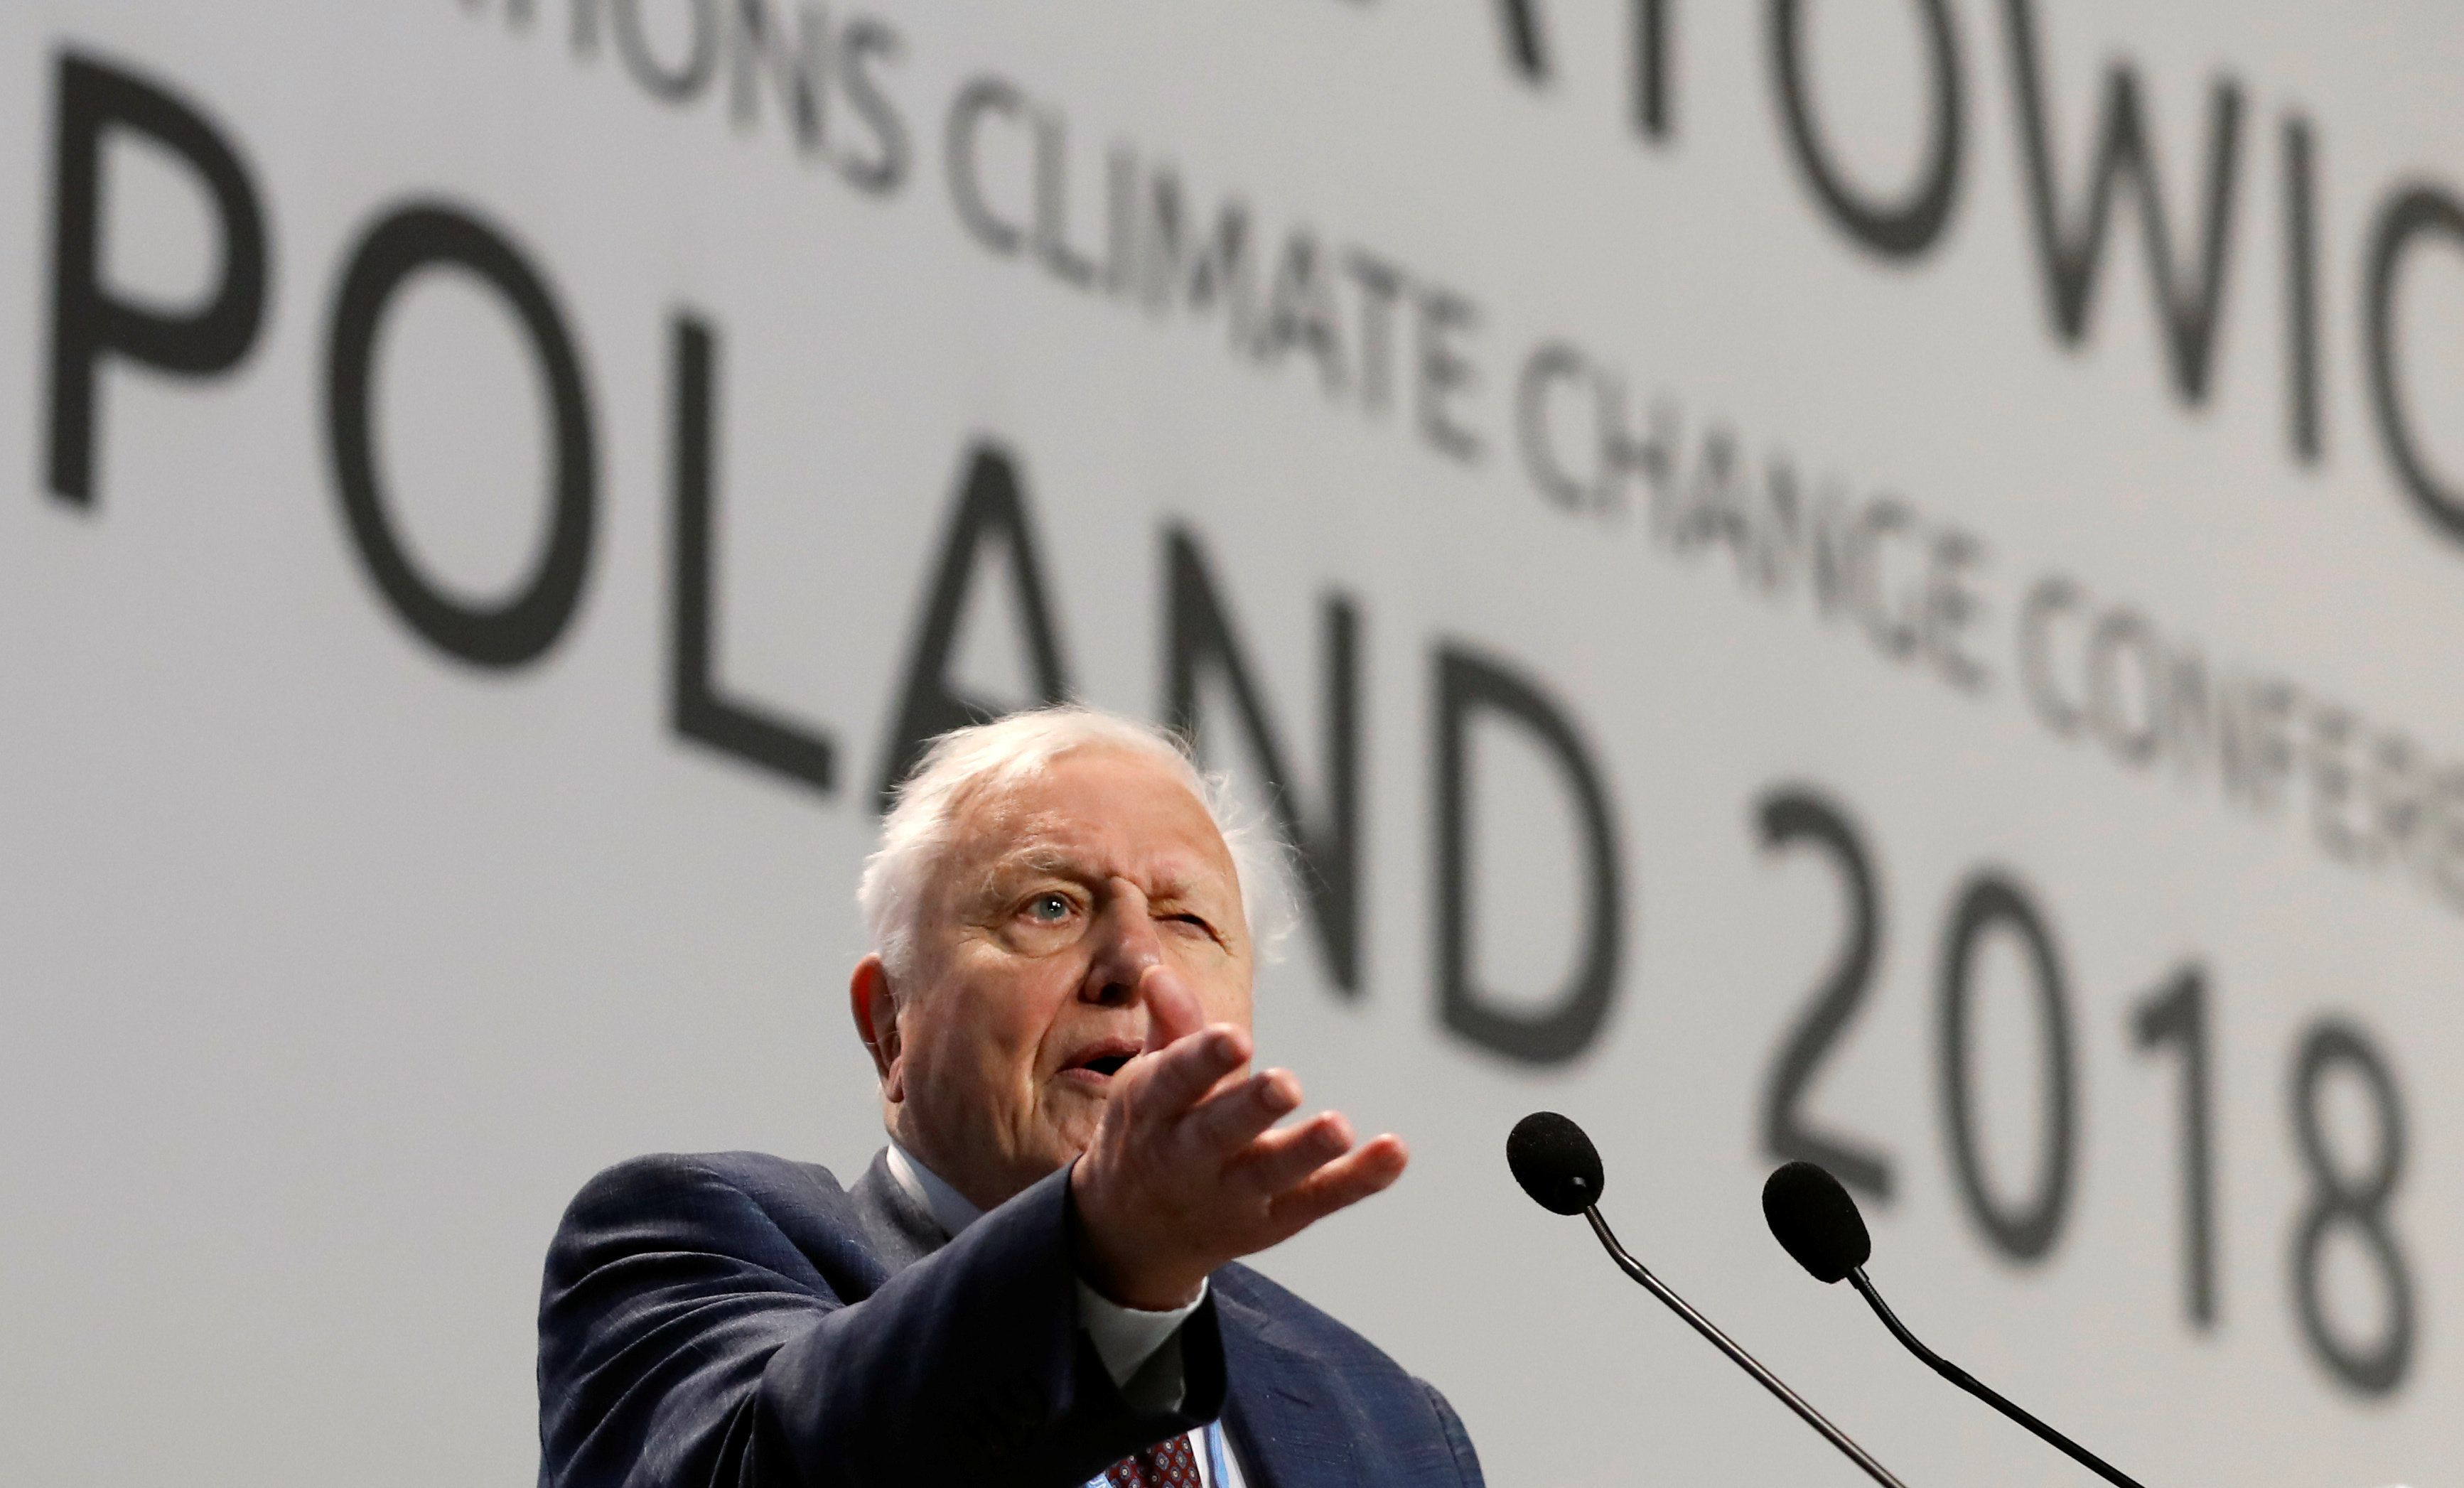 """World renowned naturalist Sir David Attenborough delivers the """"People's Seat"""" address during the opening of COP24 UN Climate Change Conference 2018 in Katowice, Poland December 3, 2018. REUTERS/Kacper Pempel"""